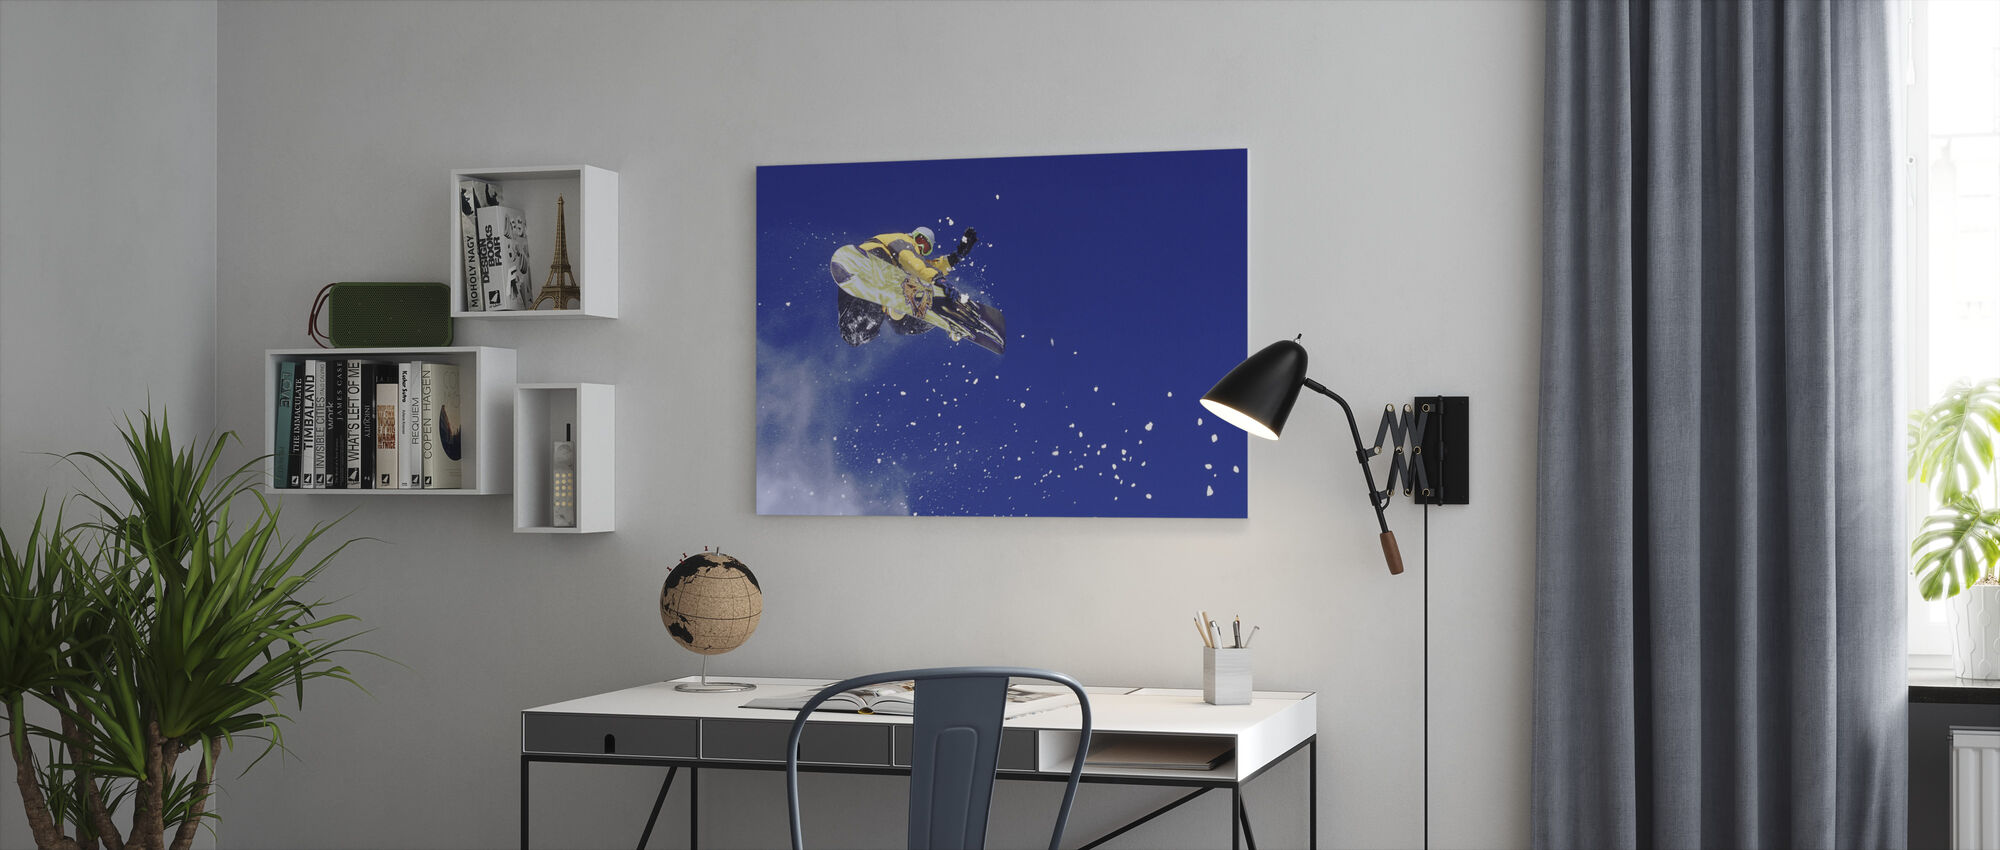 Airborne Snowboarder - Canvas print - Office